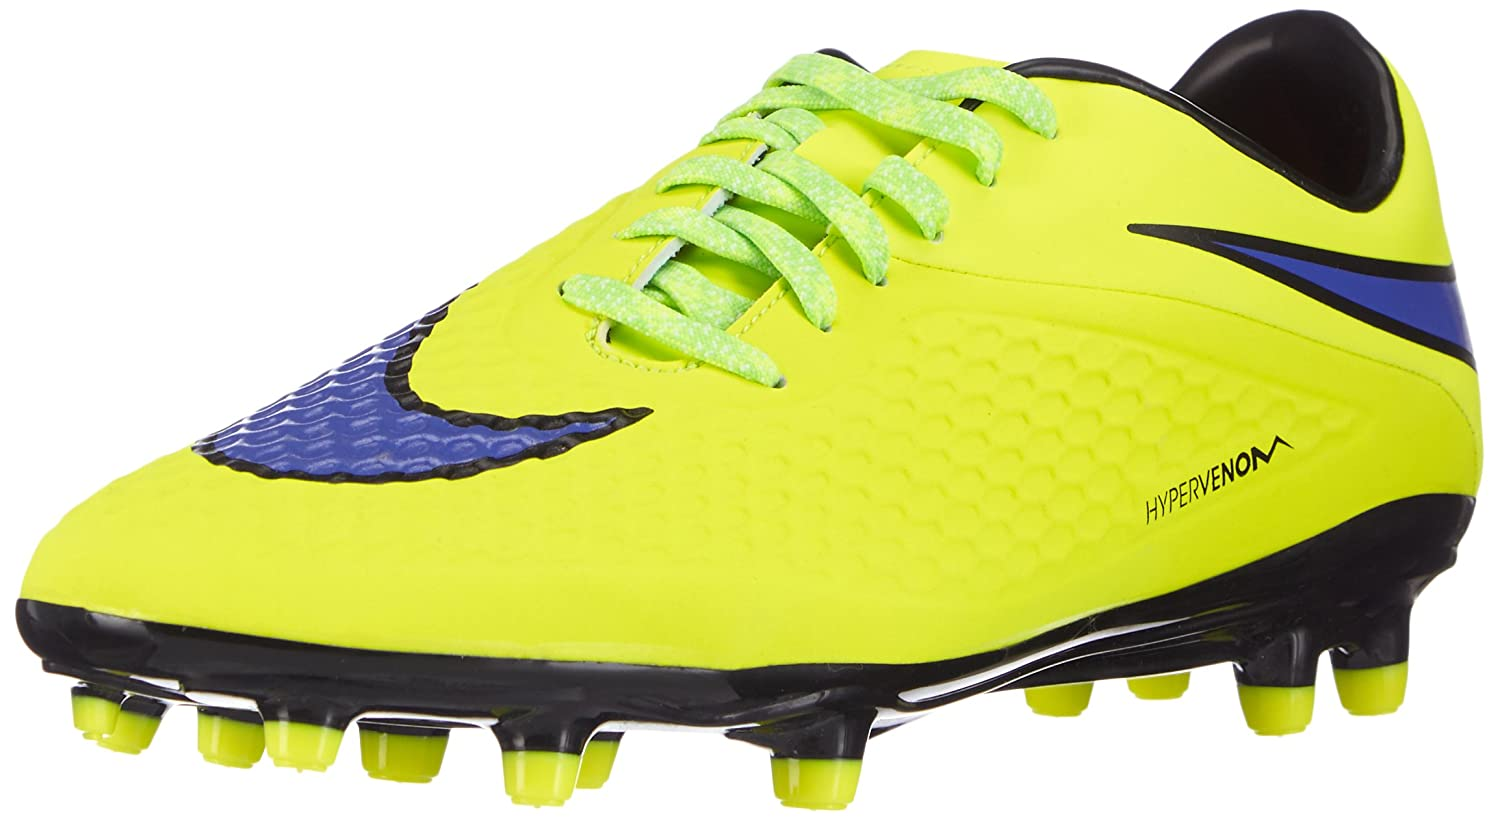 Qualité supérieure e523f 4f22d Nike Hypervenom Phelon Fg, Men's Football Competition Shoes